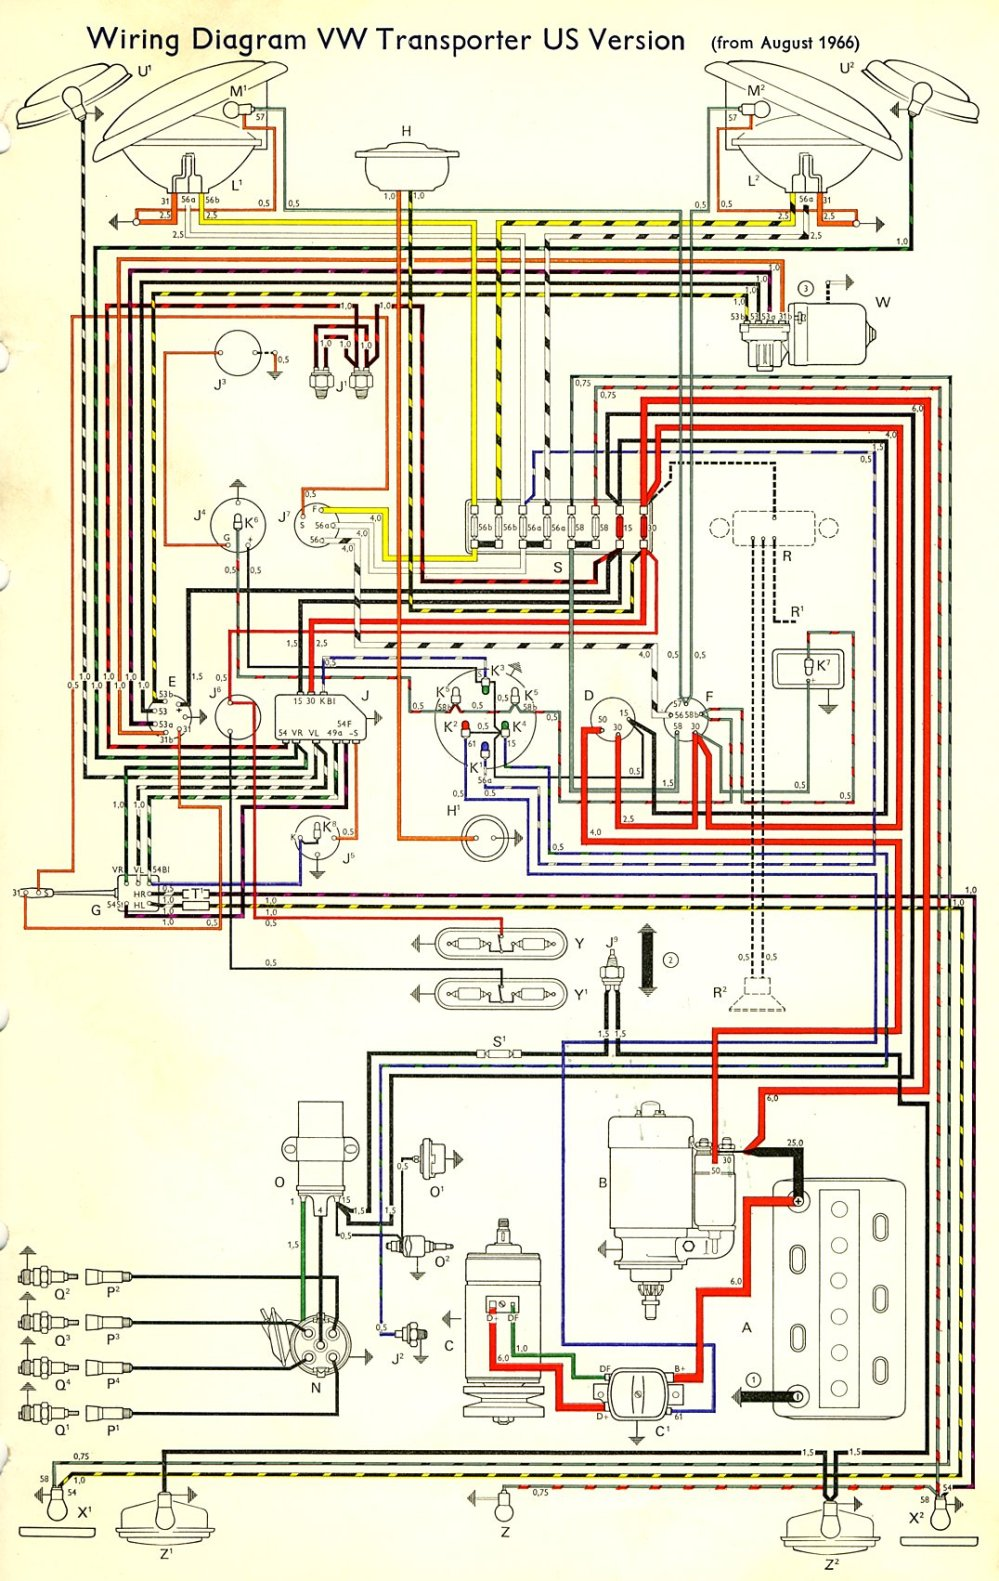 medium resolution of 1957 vw wiring diagram wiring diagrams scematic 1973 vw beetle wiring diagram 1957 vw wiring diagram